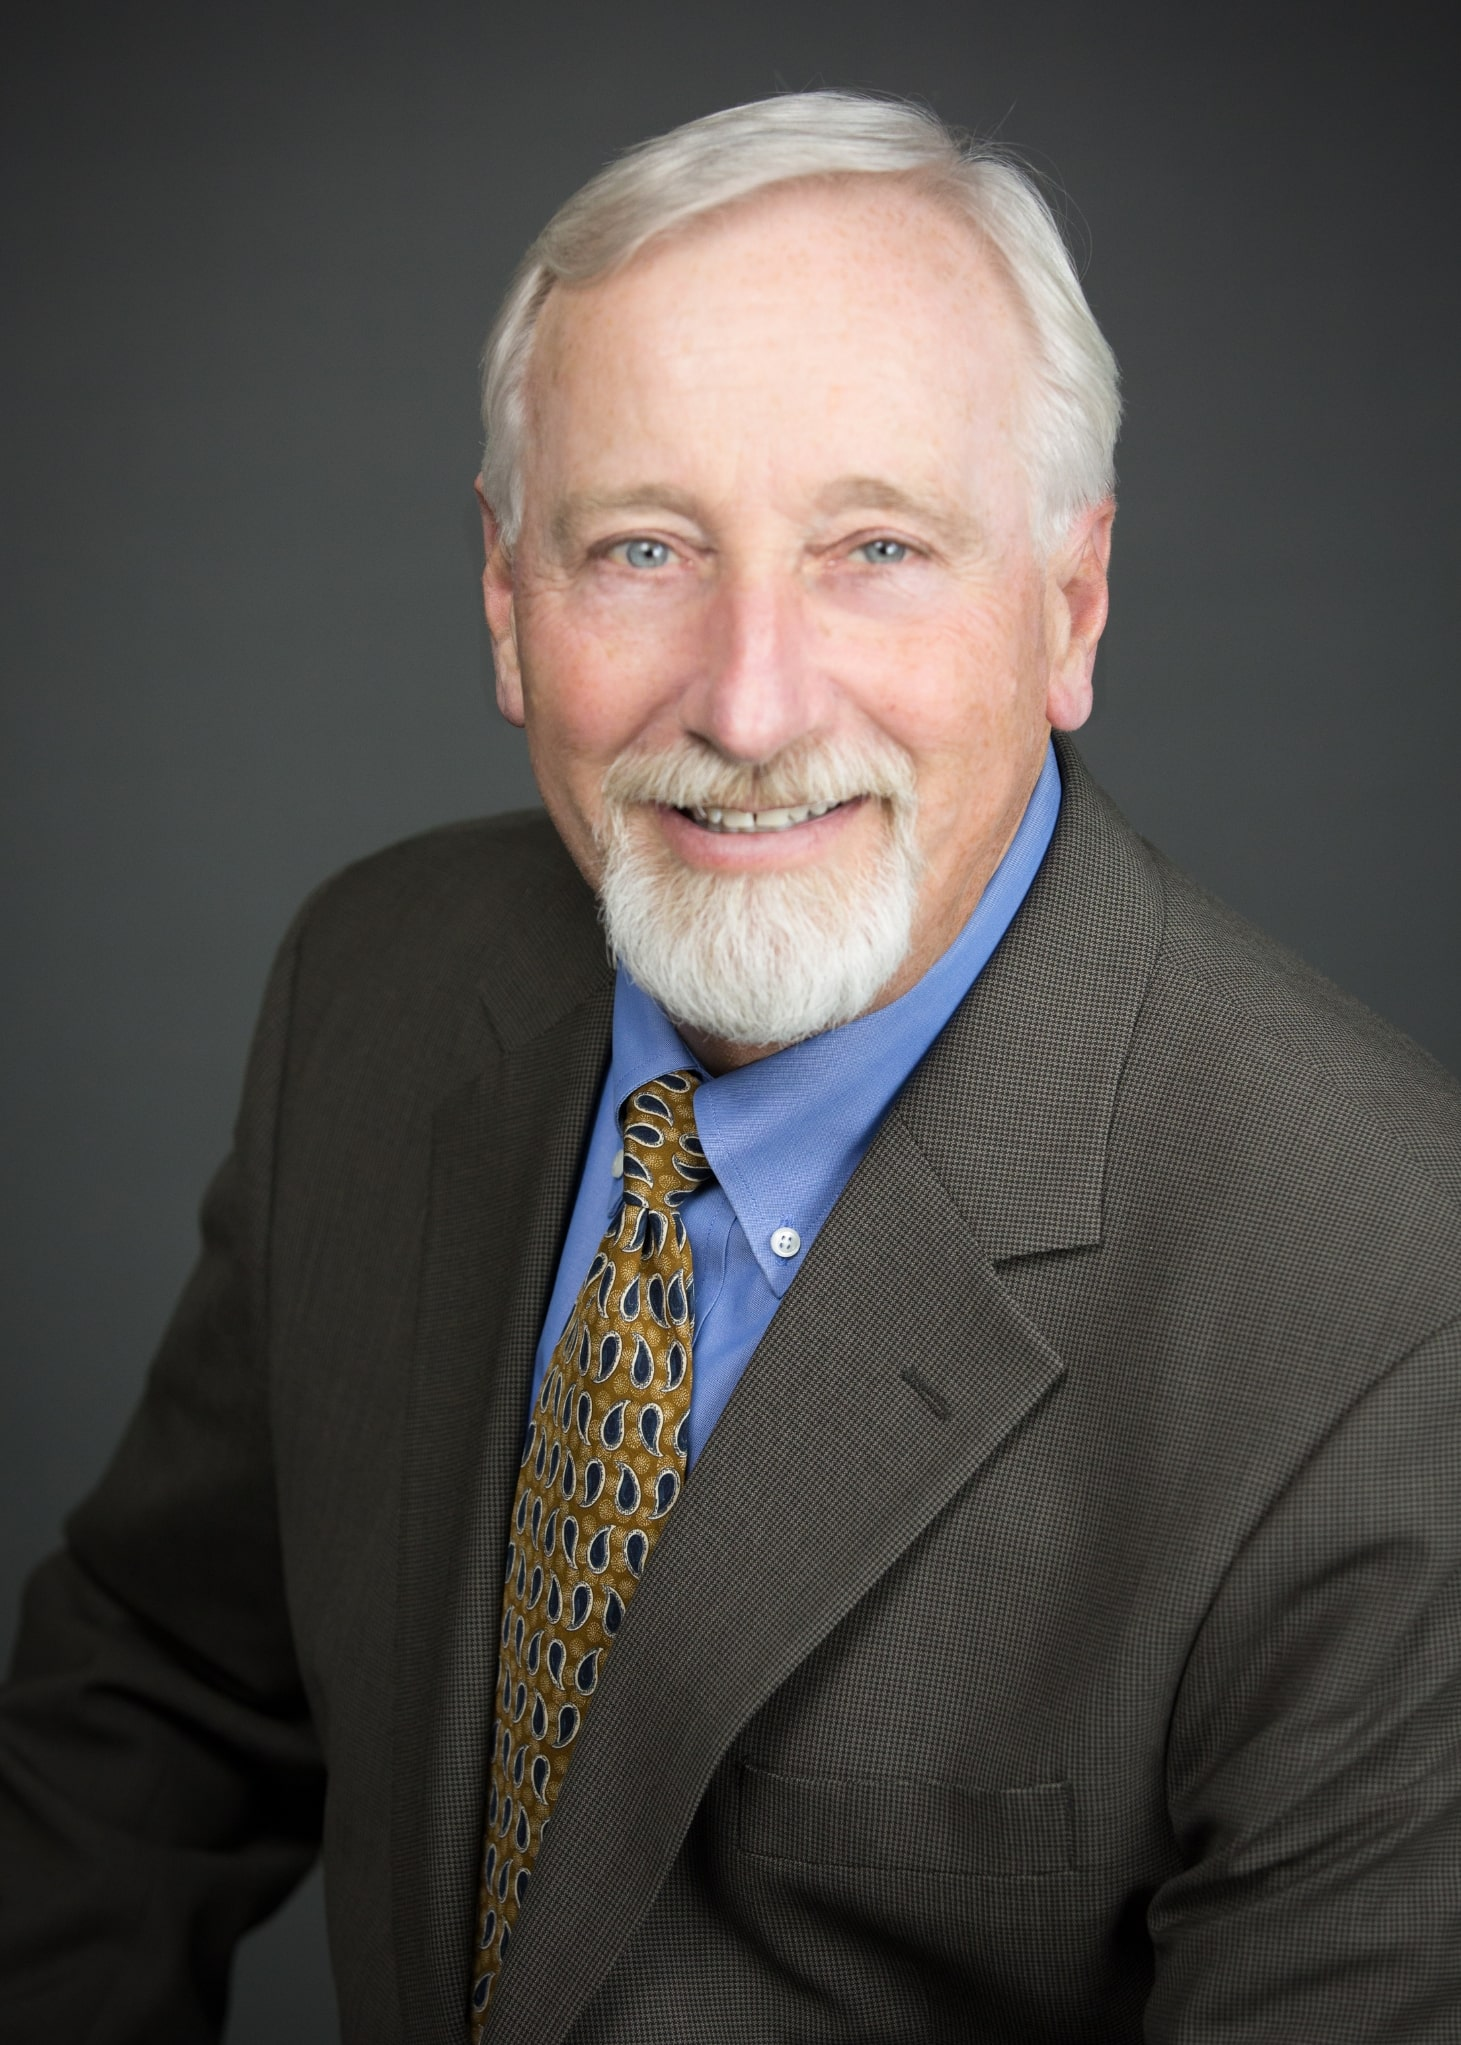 Tom Keir, Windermere, real Estate, Trusted realtor, Whidbey Island, Washington, Oak Harbor, Buy, Sell, Invest